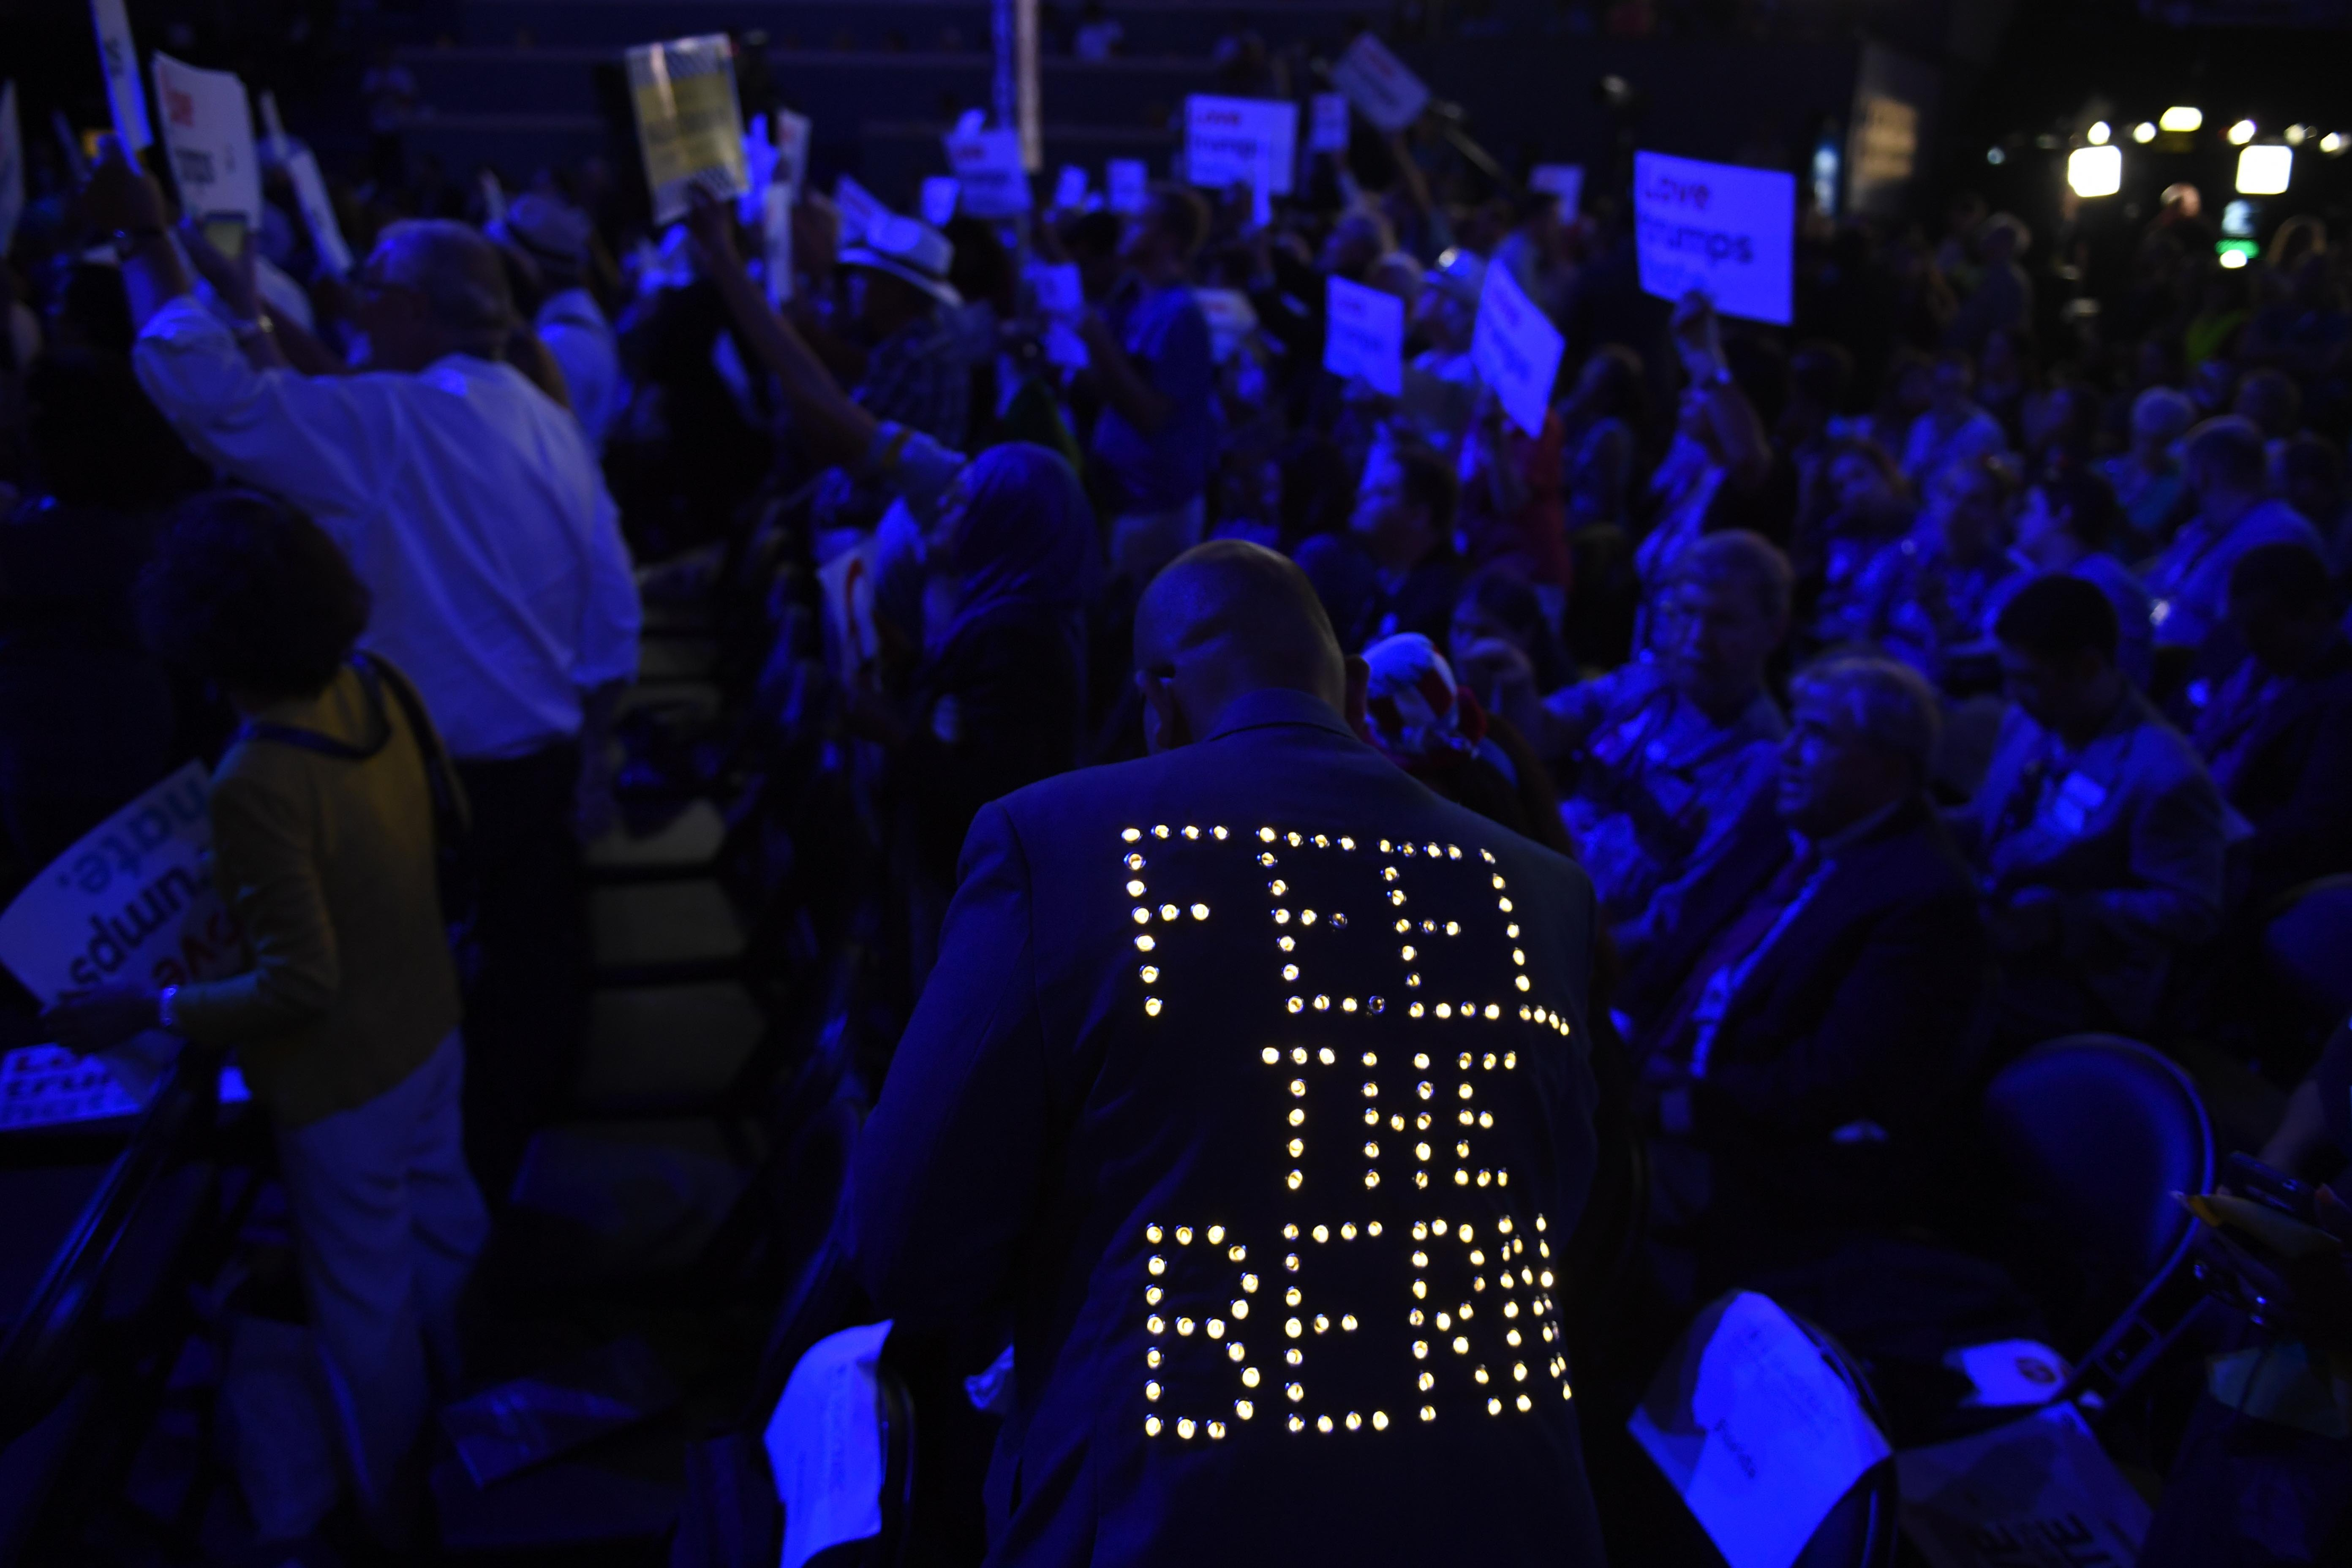 A supporter of Bernie Sanders wears a sequined jacket during the 2016 Democratic National Convention at Wells Fargo Arena.